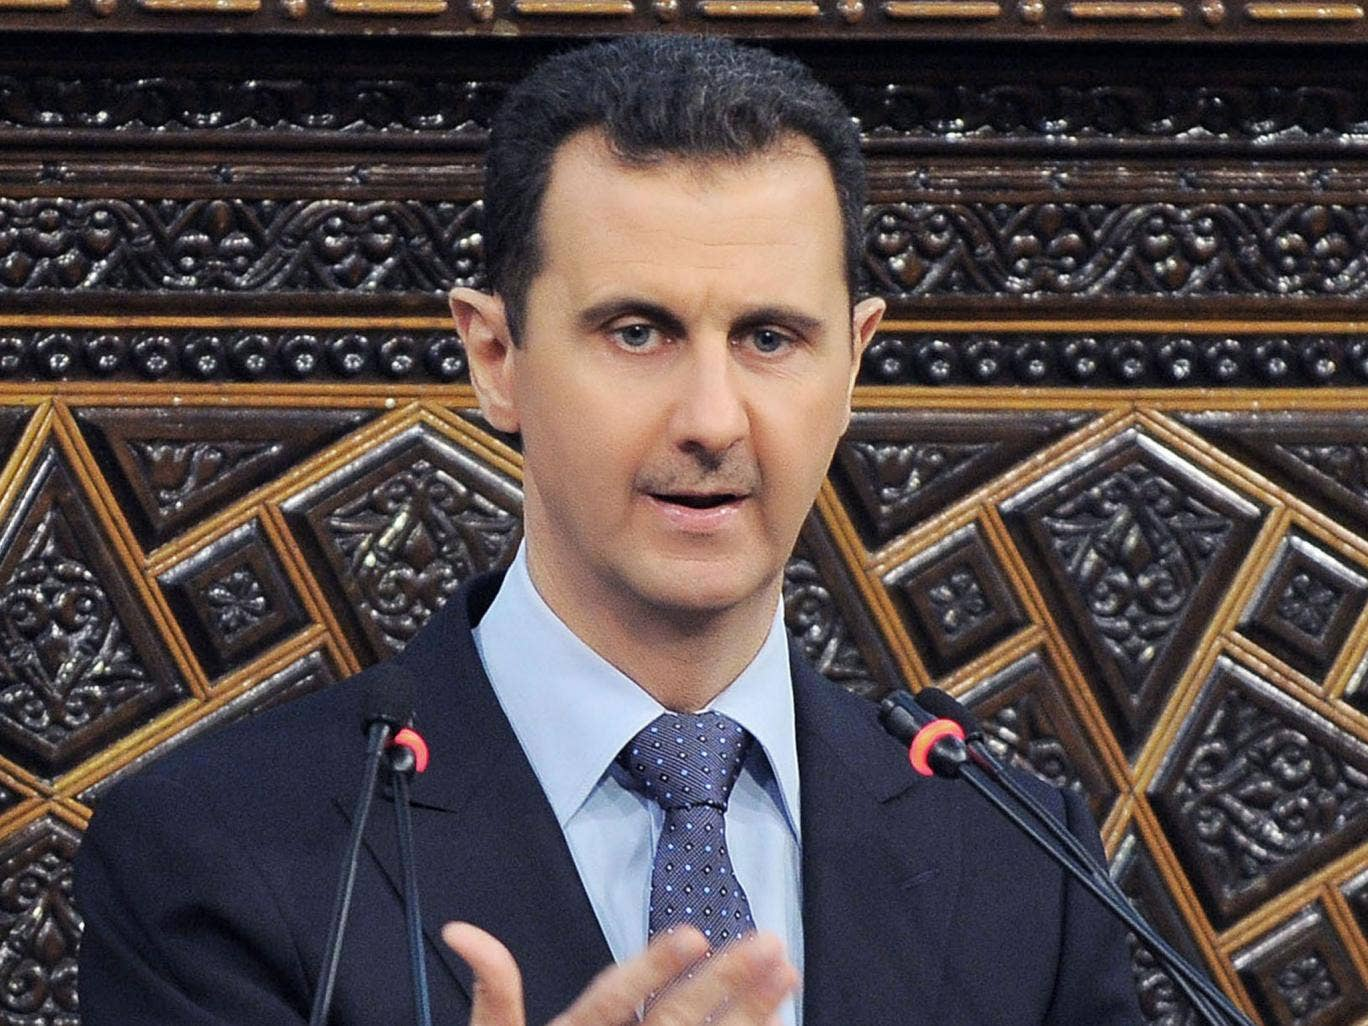 Syria must become a 'resistance nation like Hezbollah' says President Bashar al-Assad